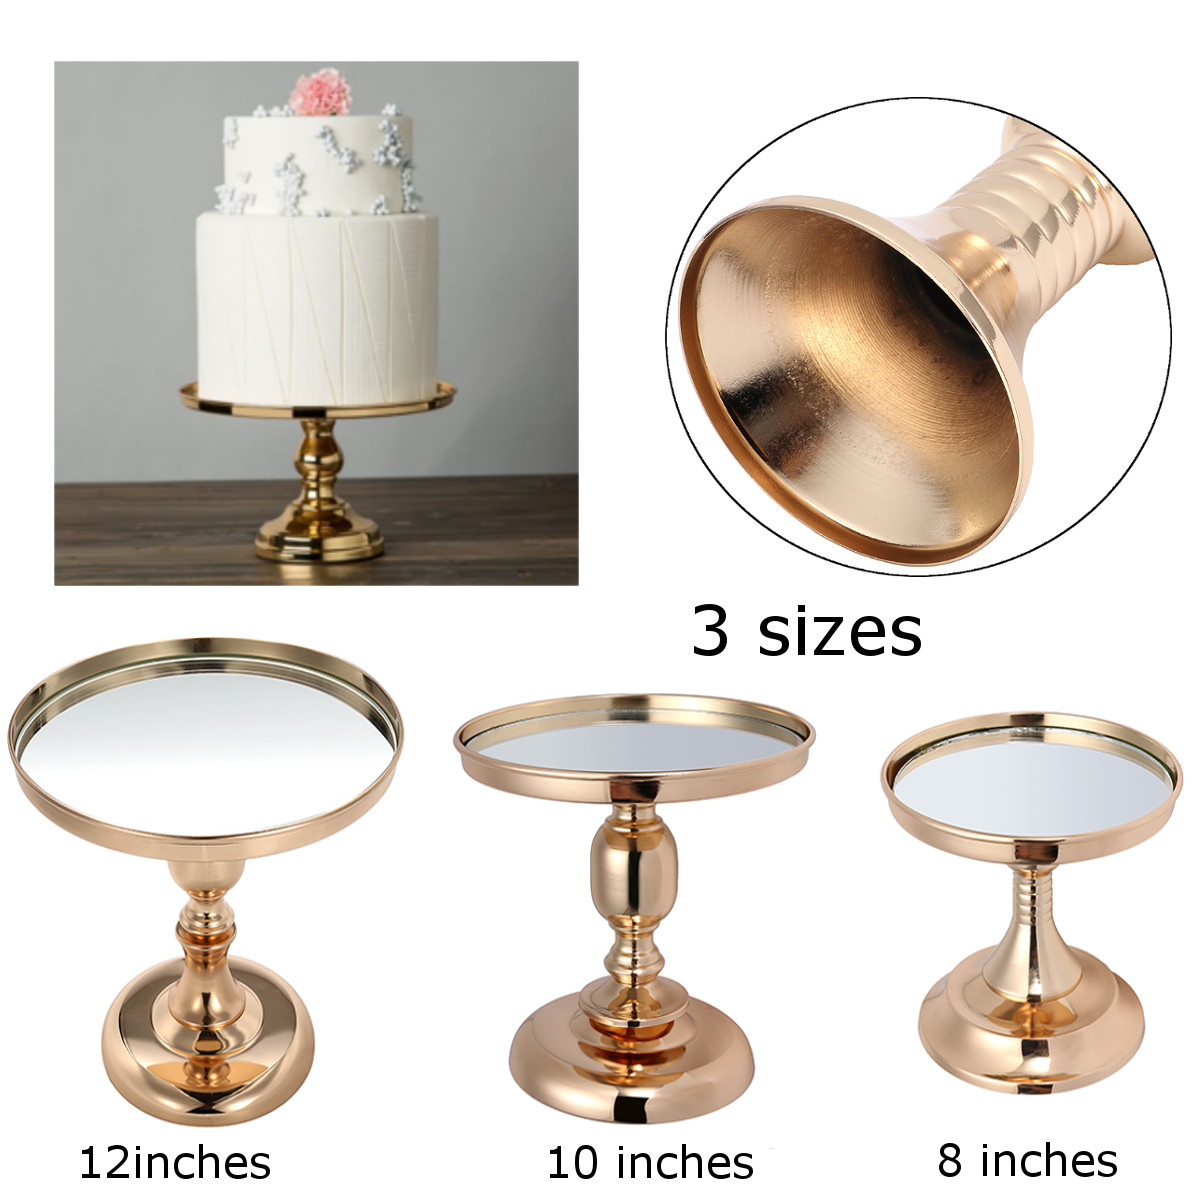 Gold Plated Mirror Cake Pan Stand Glass Round Wedding Display Pedestal 8 10 12 Inch